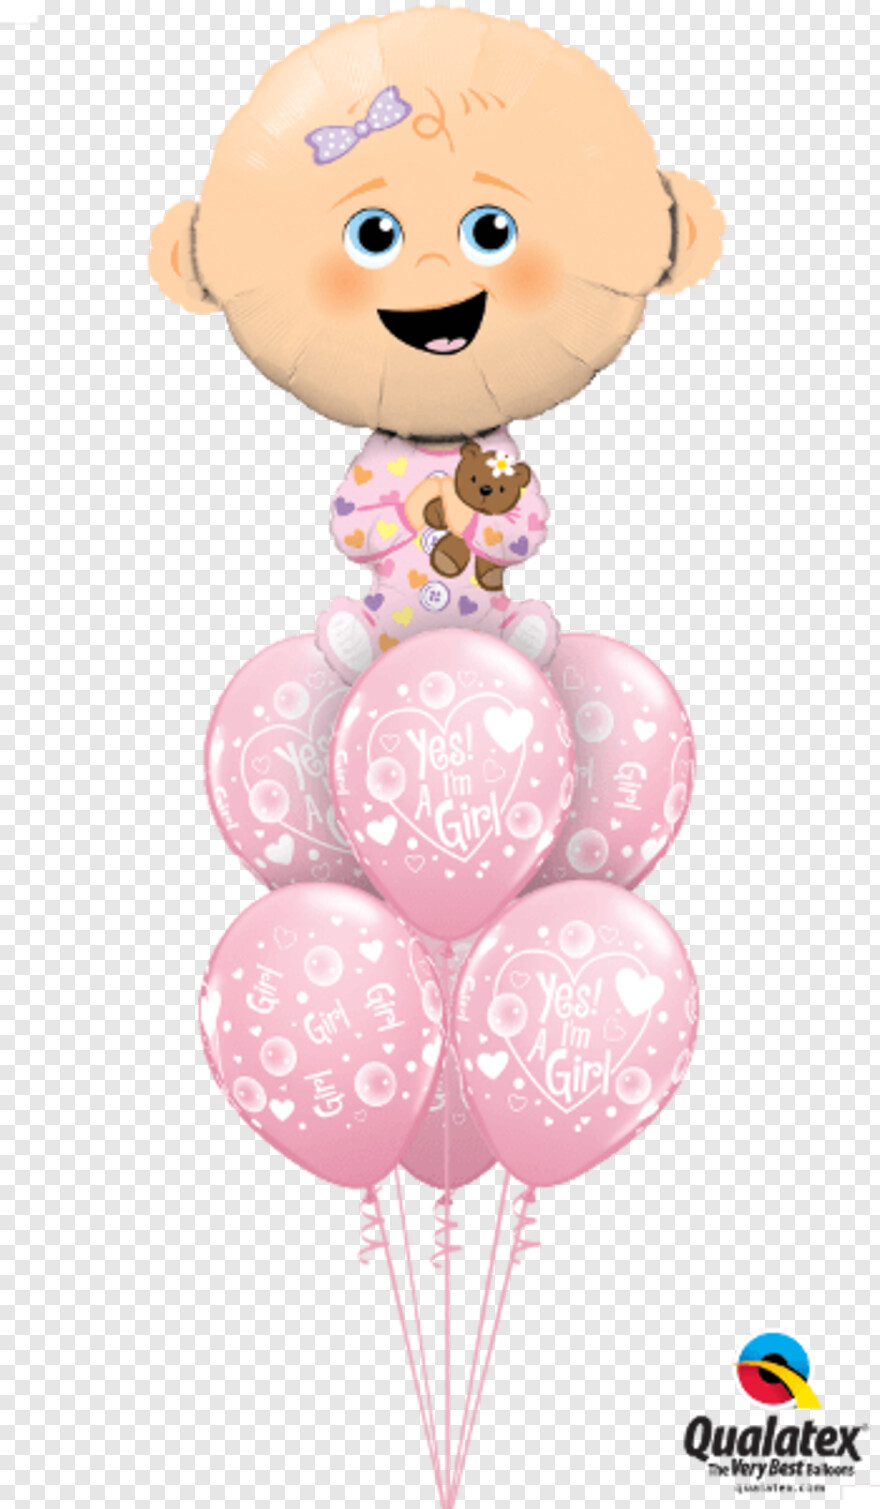 Pink Baby Feet - Its A Boy Balloons, HD Png Download